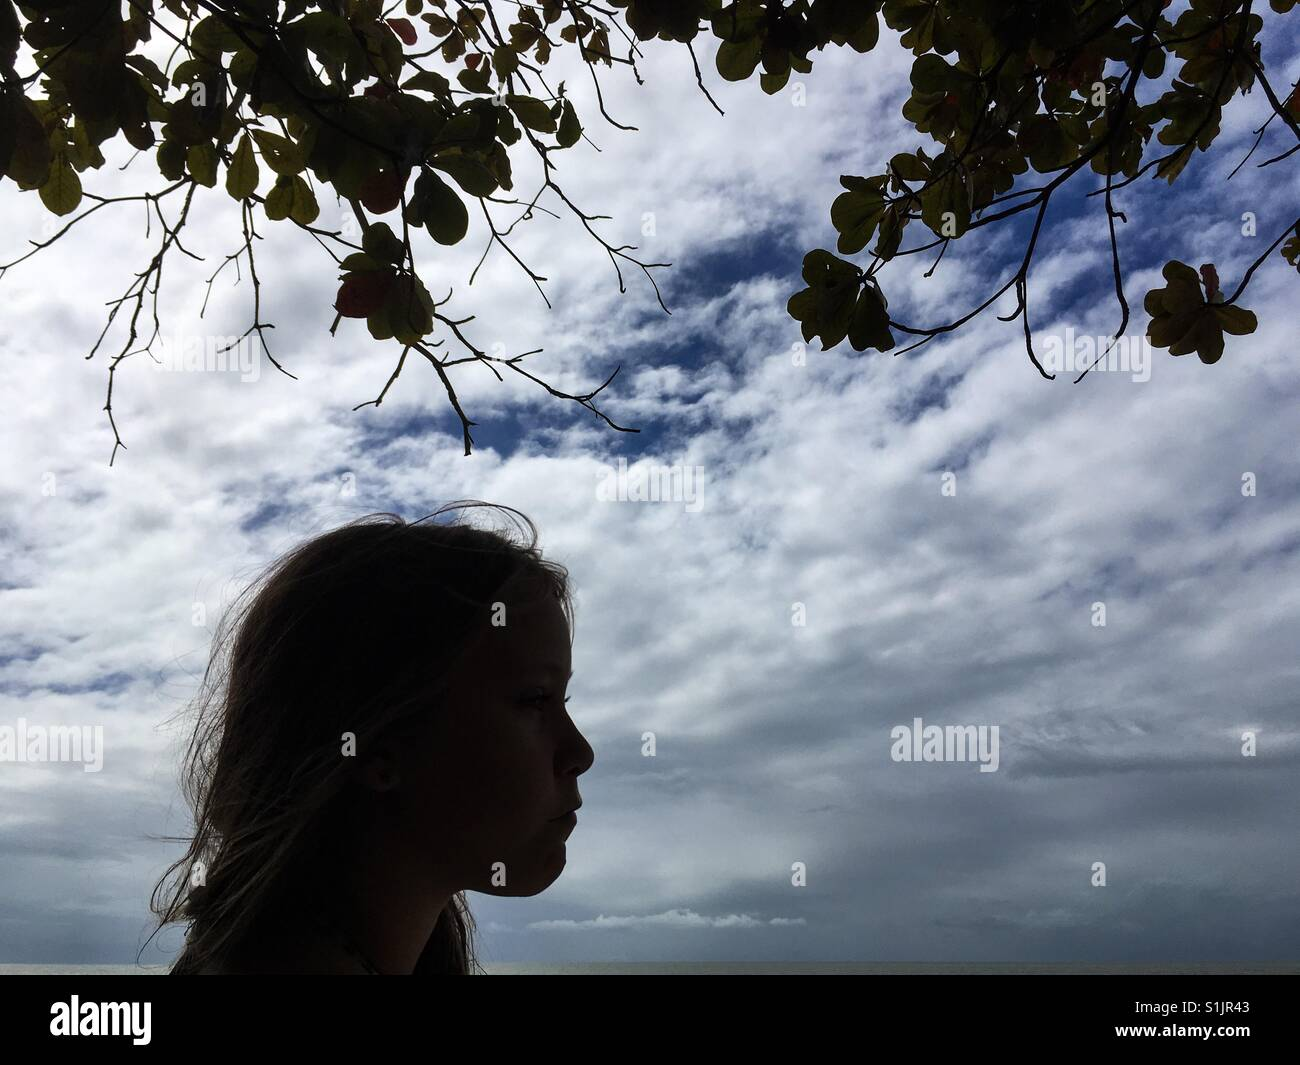 Silhouette of a pre-teen girl . - Stock Image